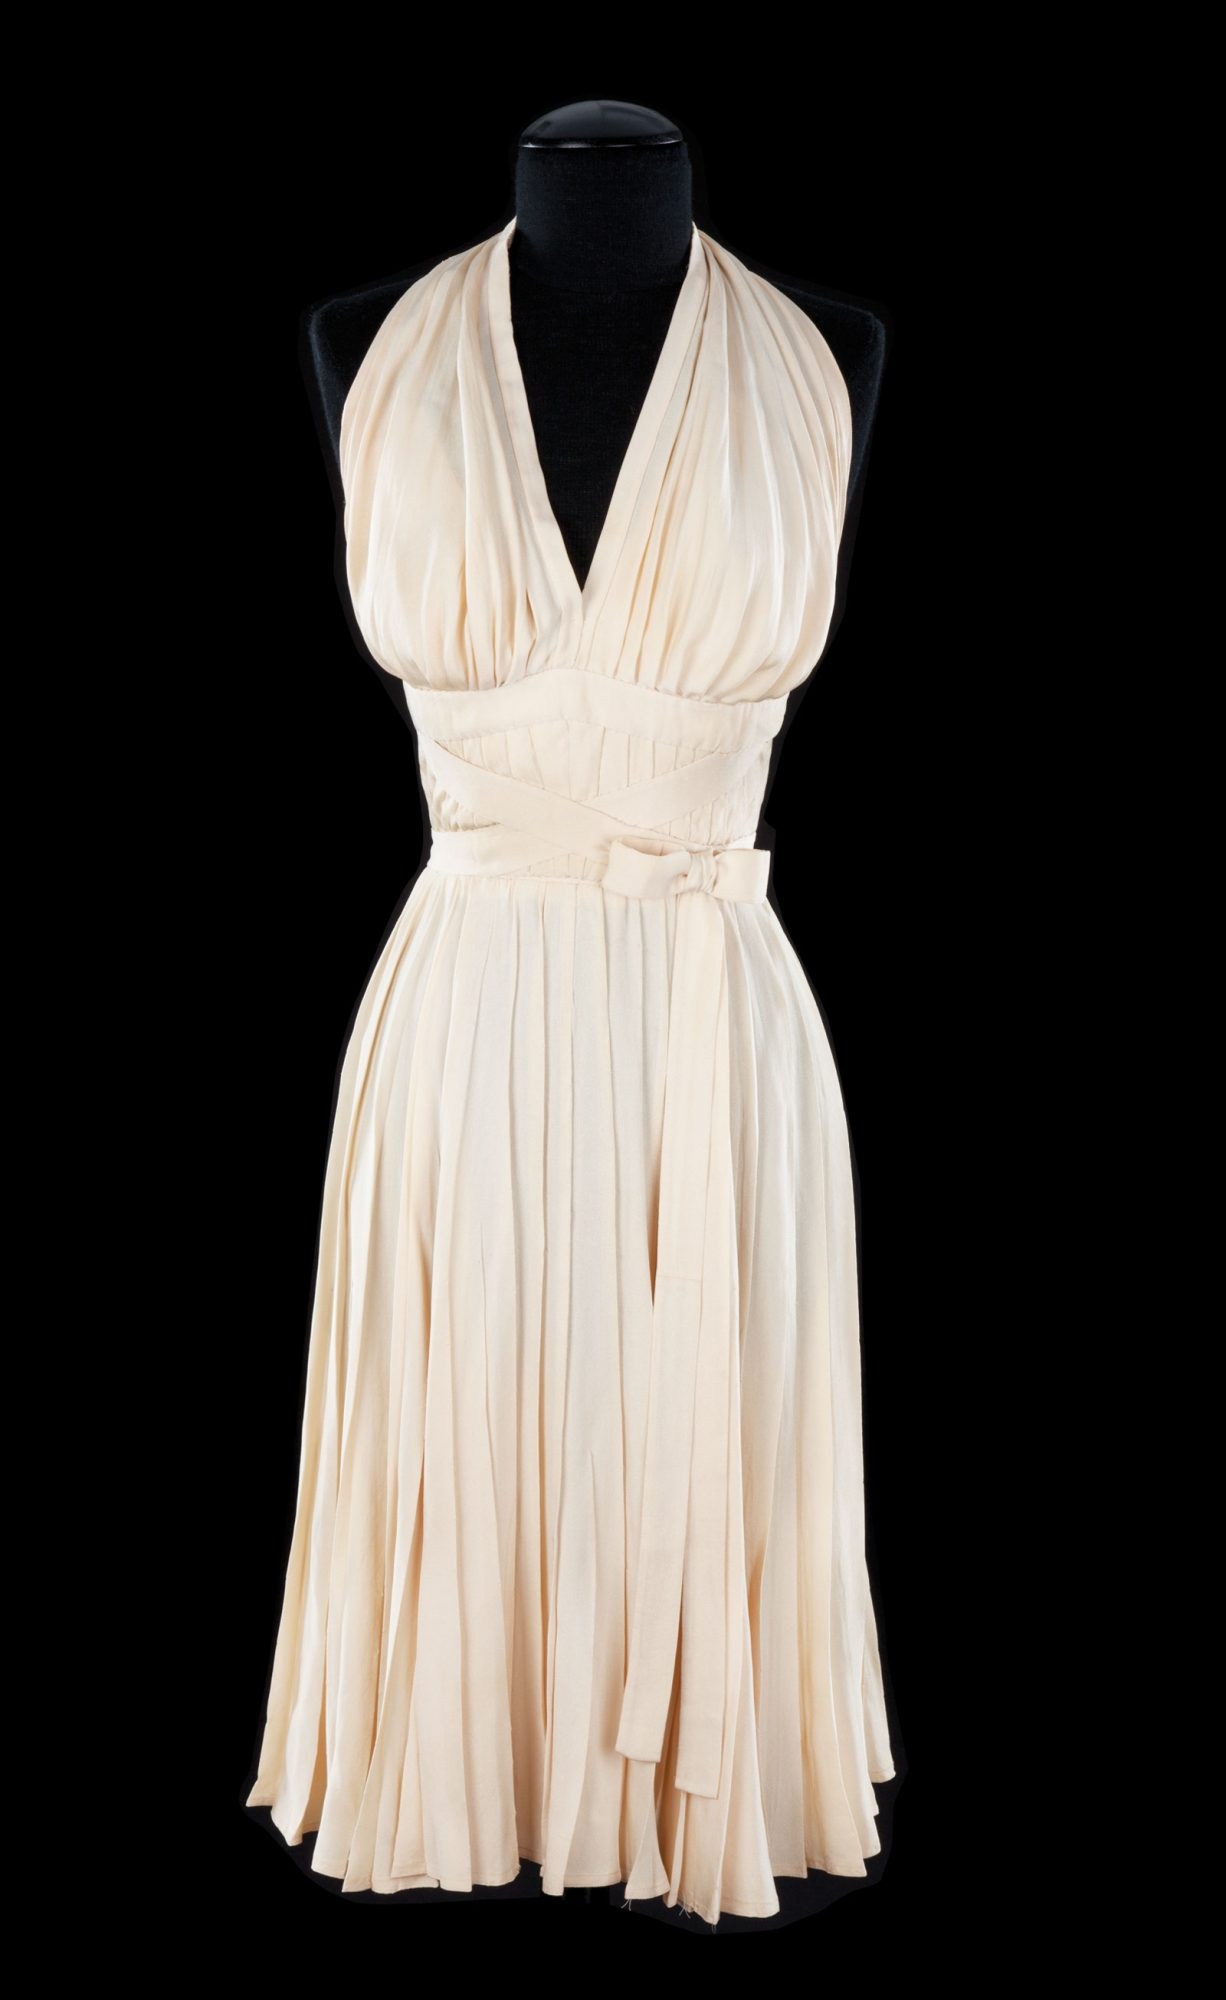 marilyn-monroe-subway-dress-from-the-seven-year-itch-1